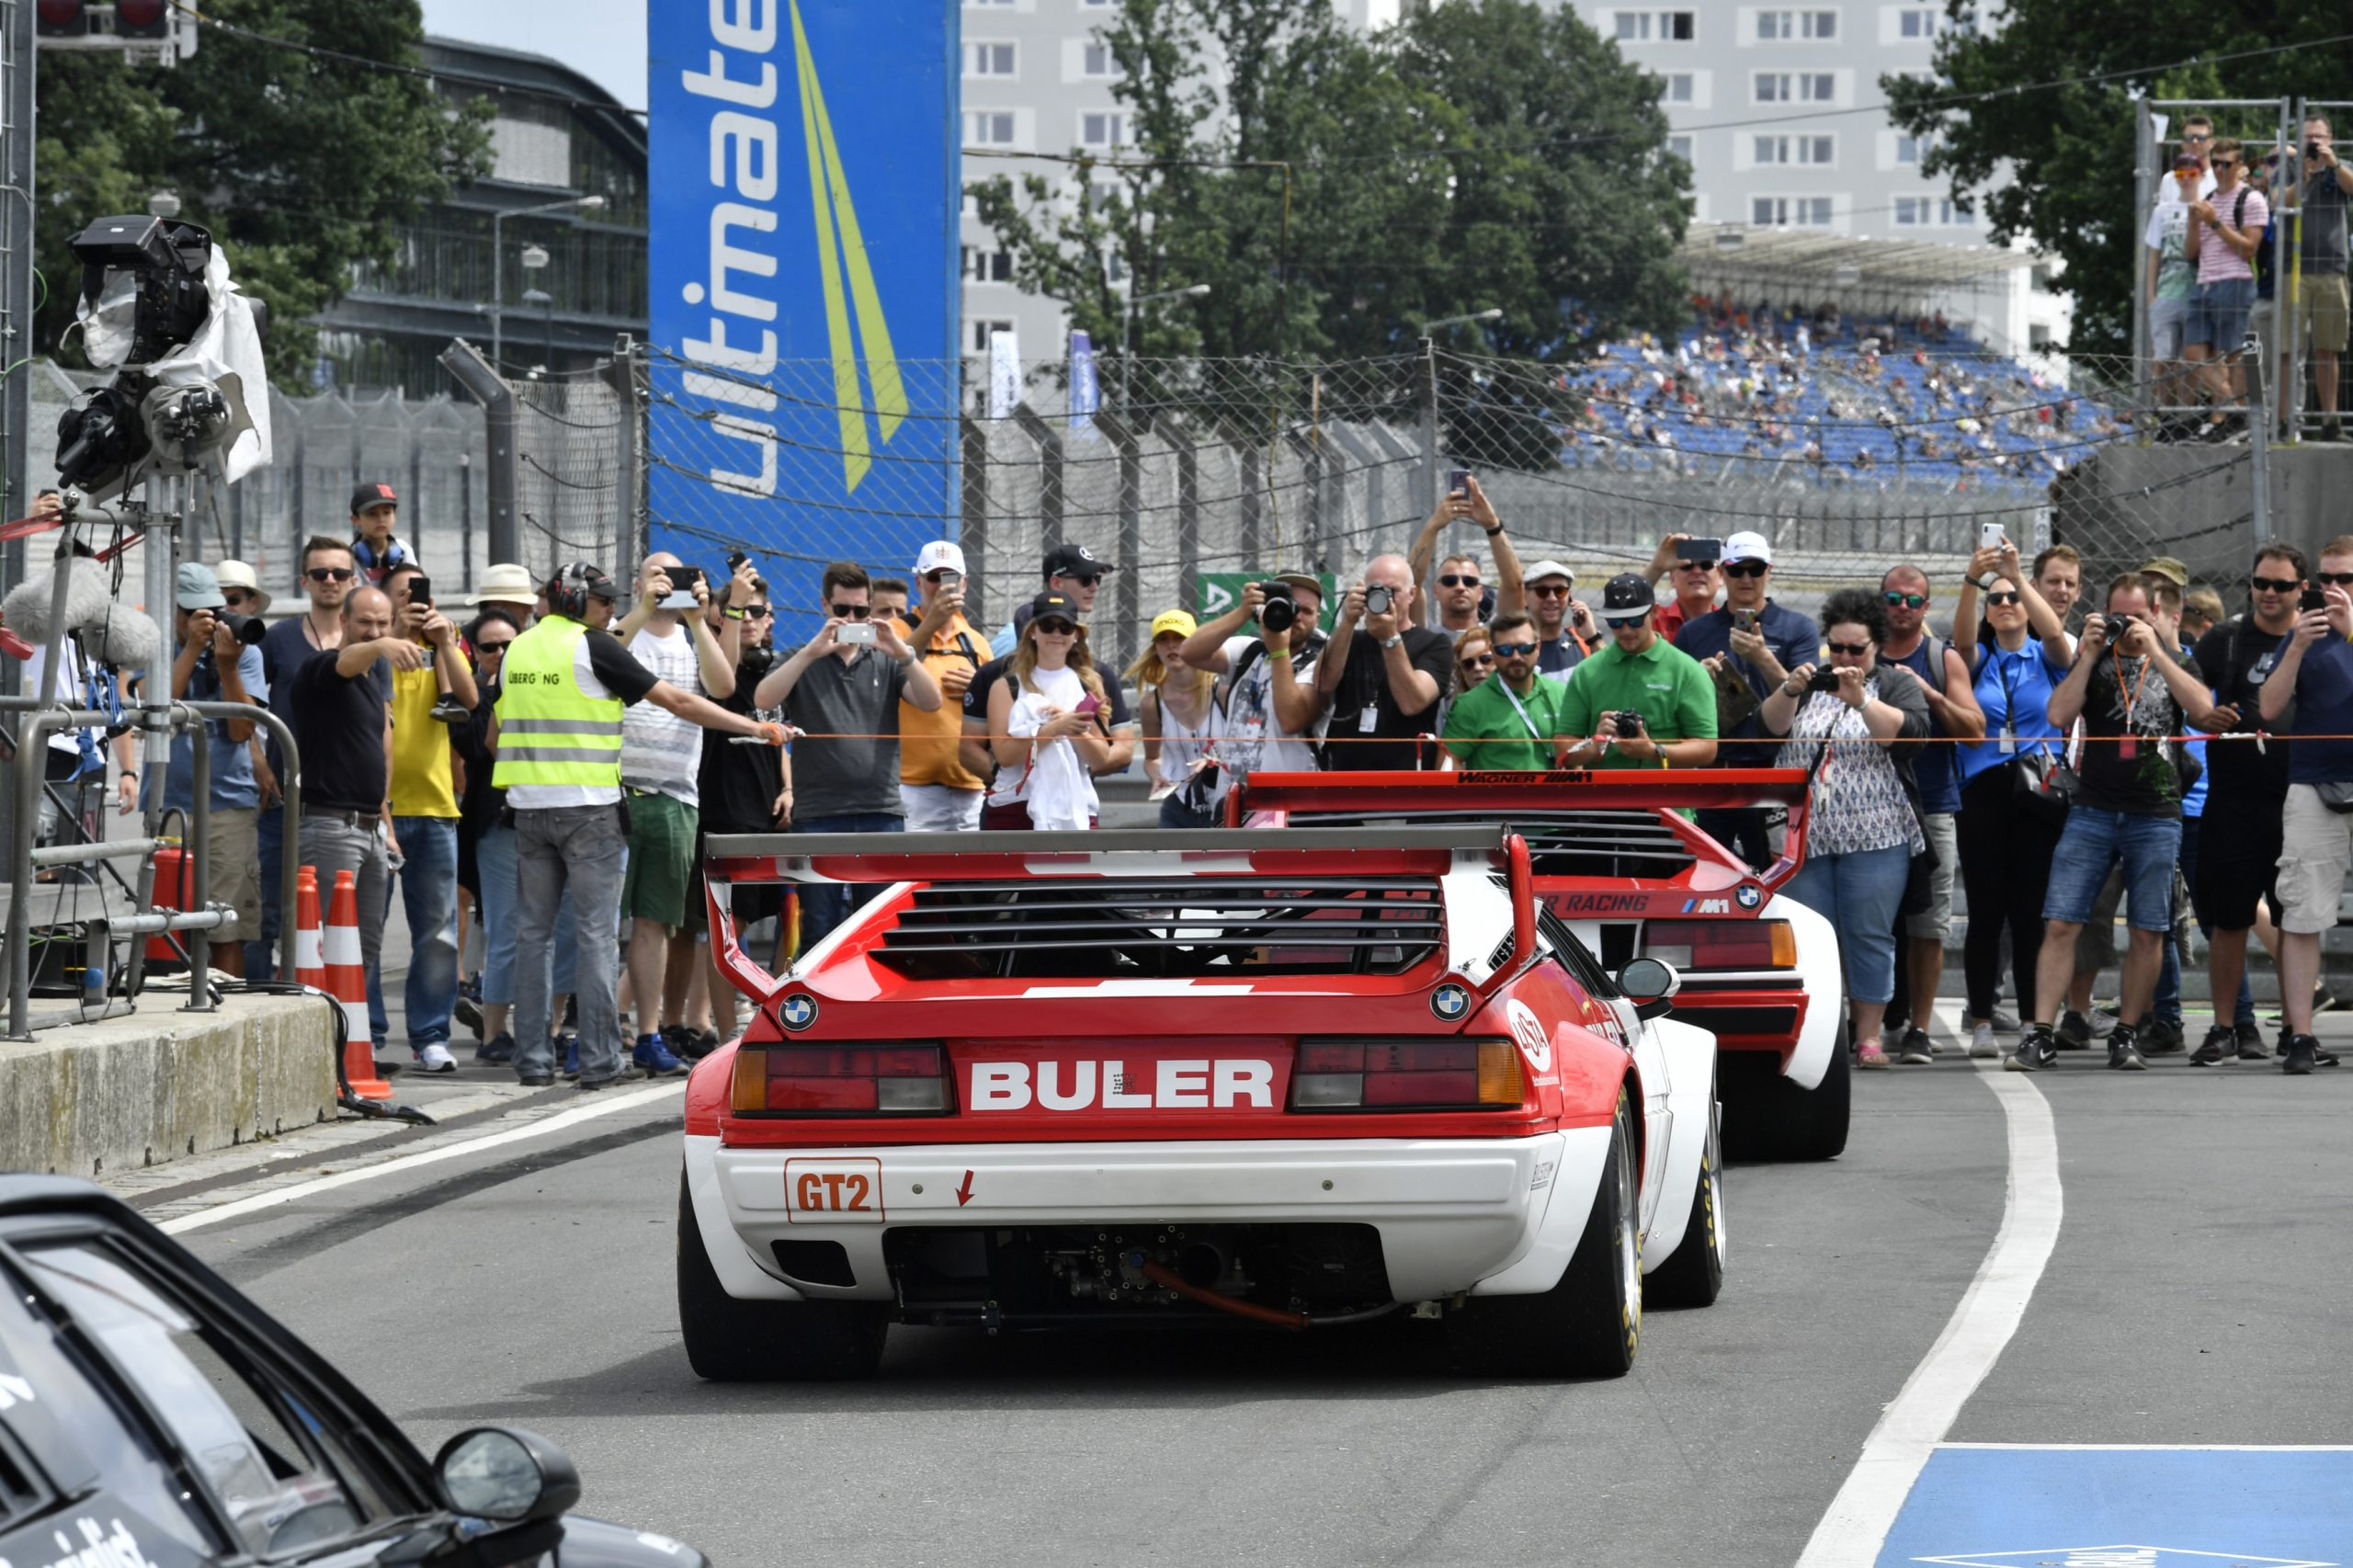 crowd picture m1 procar norisring